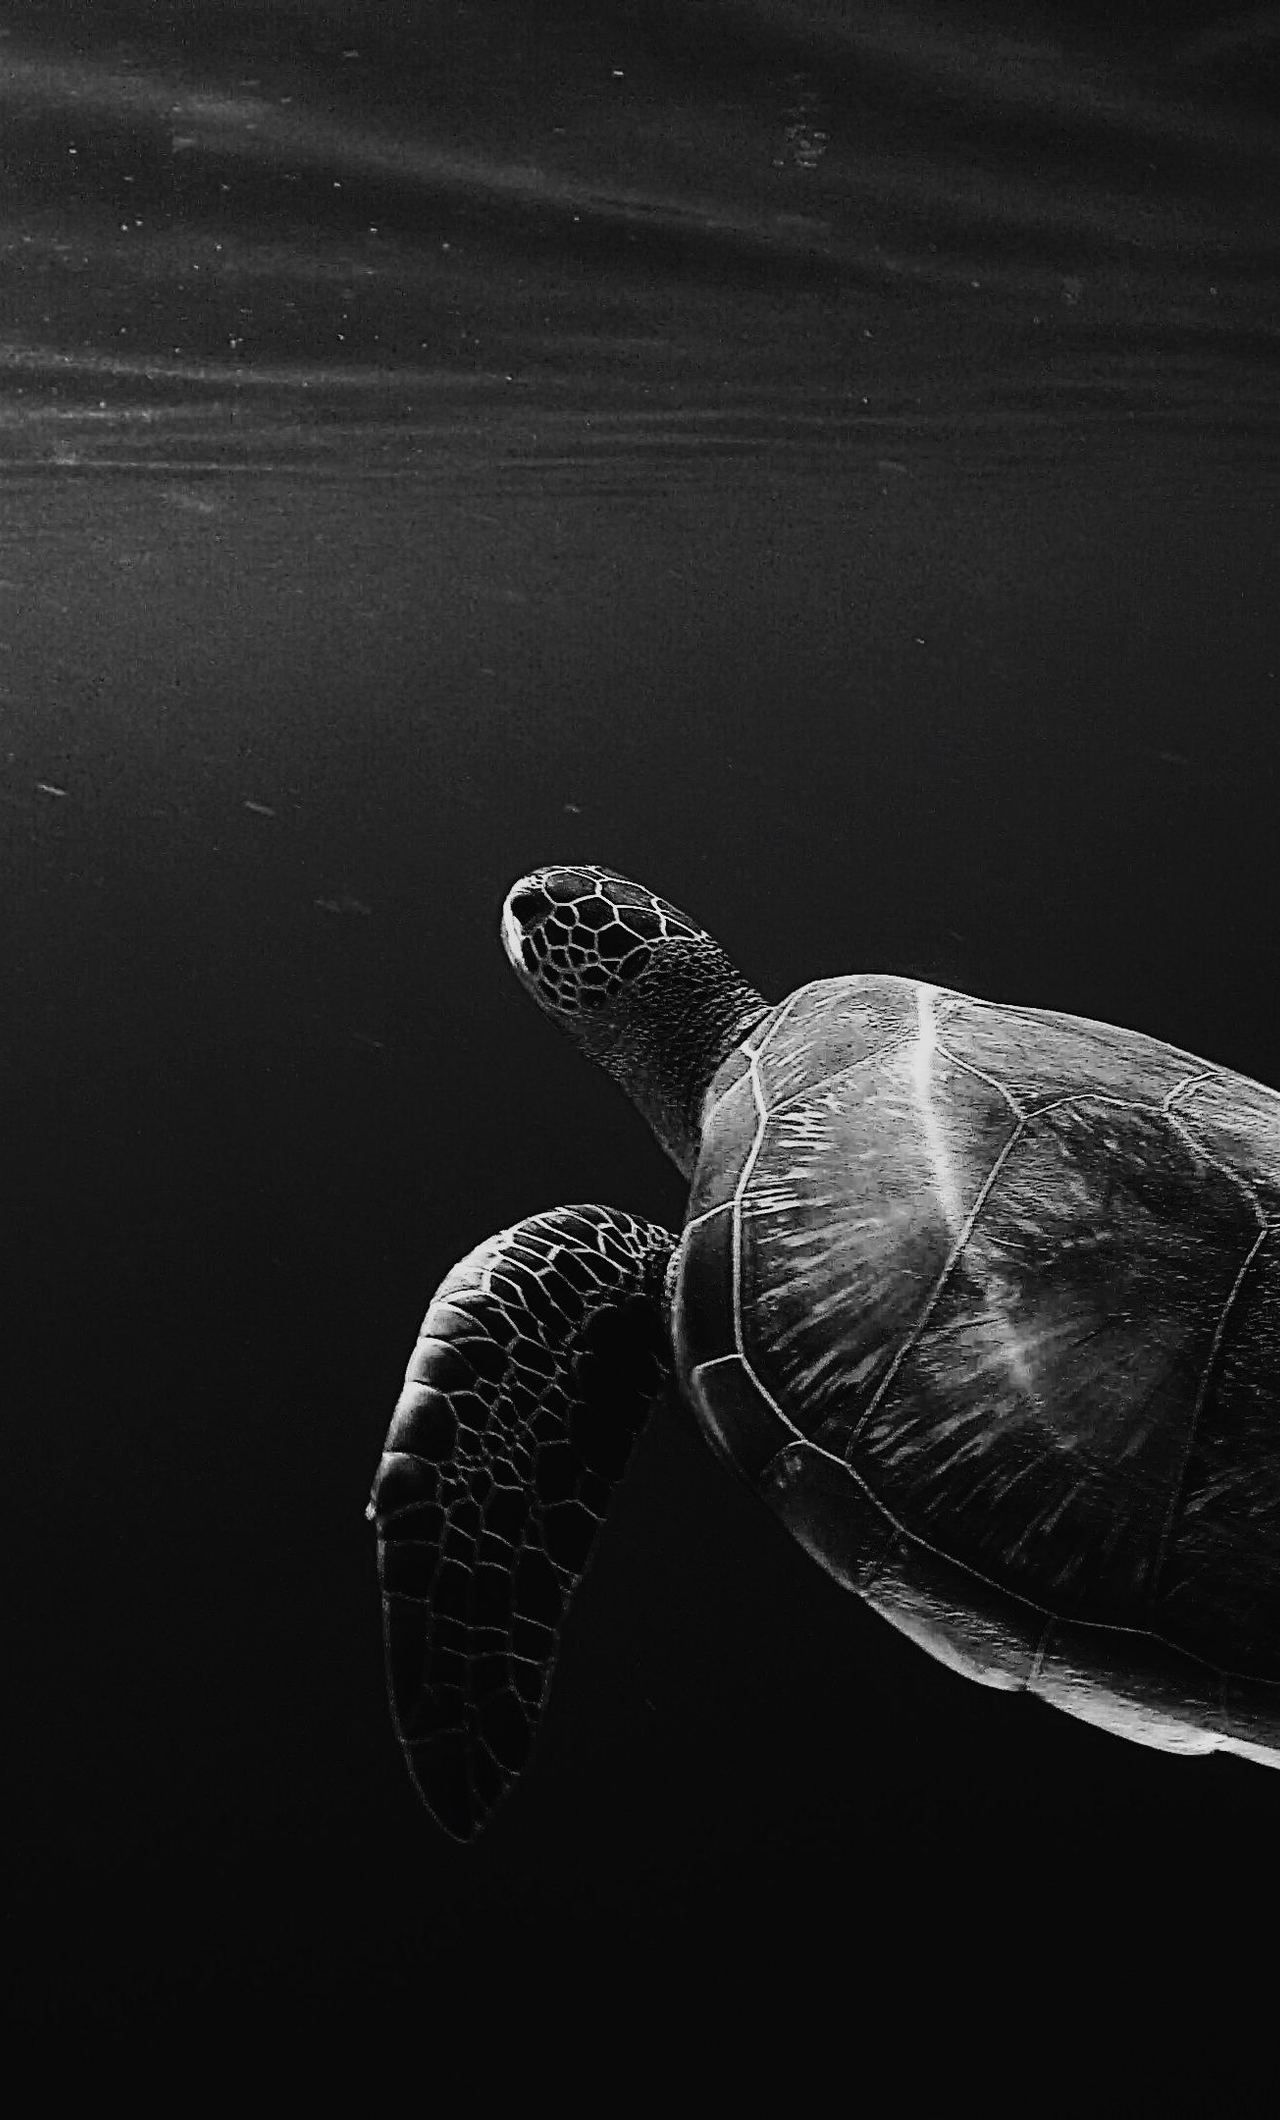 1280x2120 1280x2120 Turtle Oled 4k iPhone 6+ HD 4k Wallpapers, Images ...